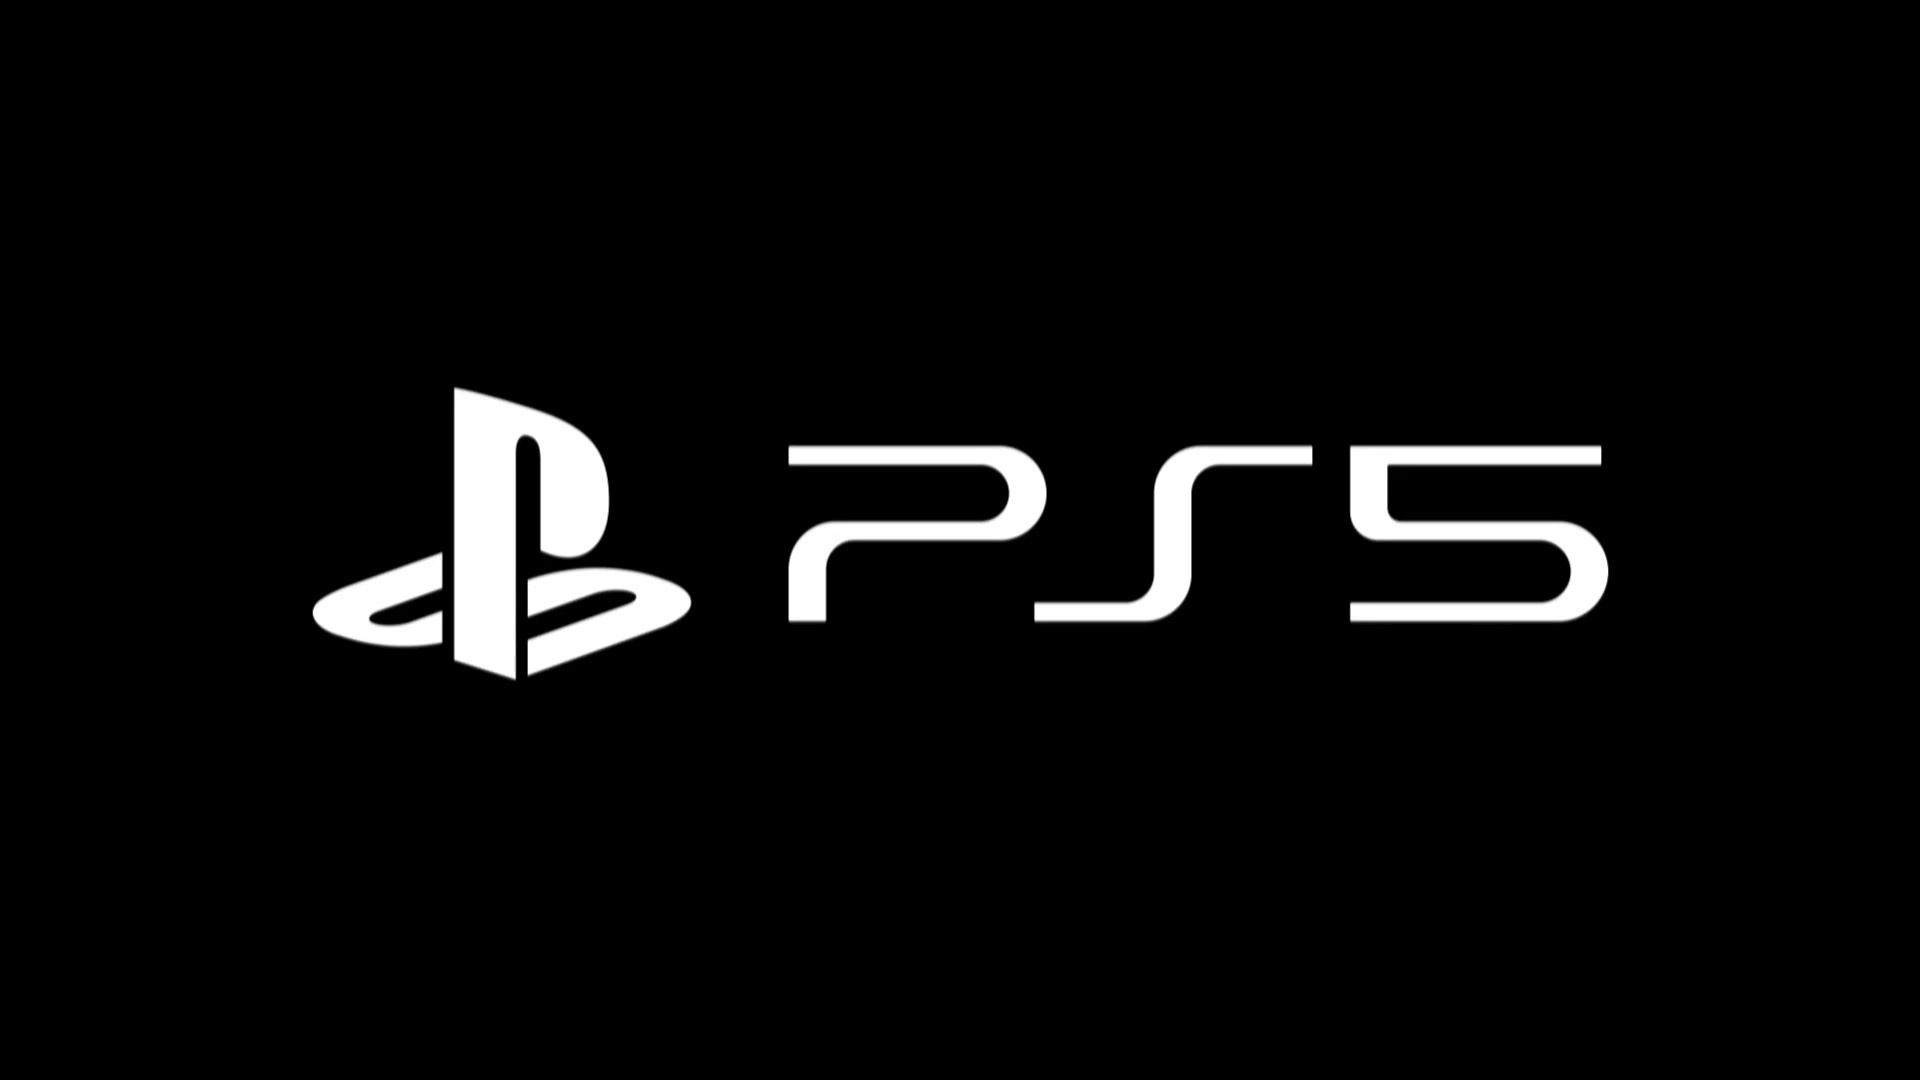 PS5 logo Playstation 5